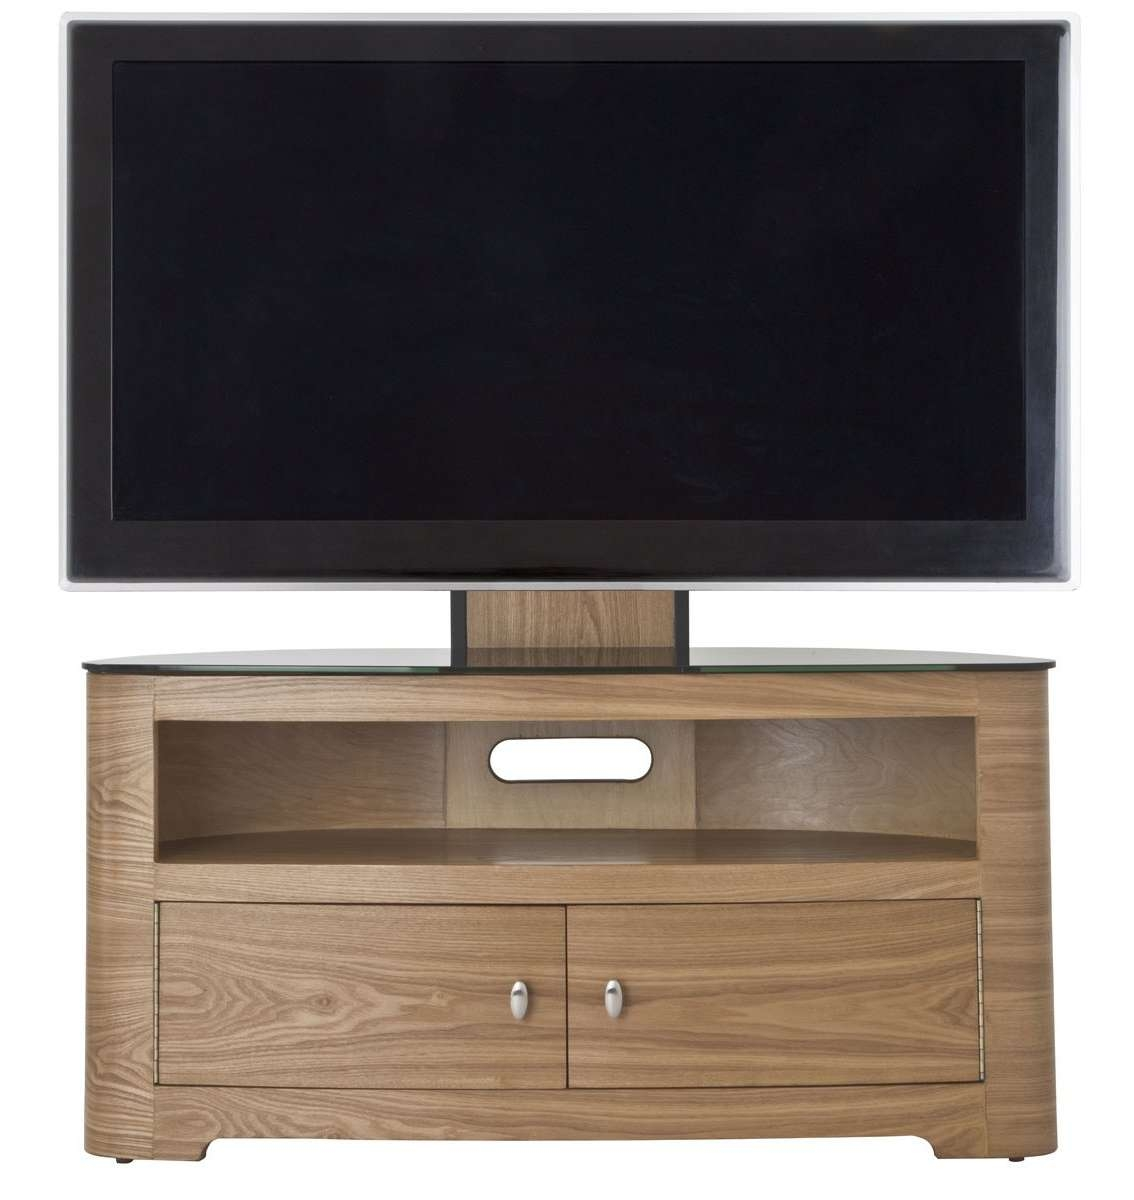 Avf Blenheim Oak Cantilever Tv Stand Intended For Double Tv Stands (View 1 of 15)